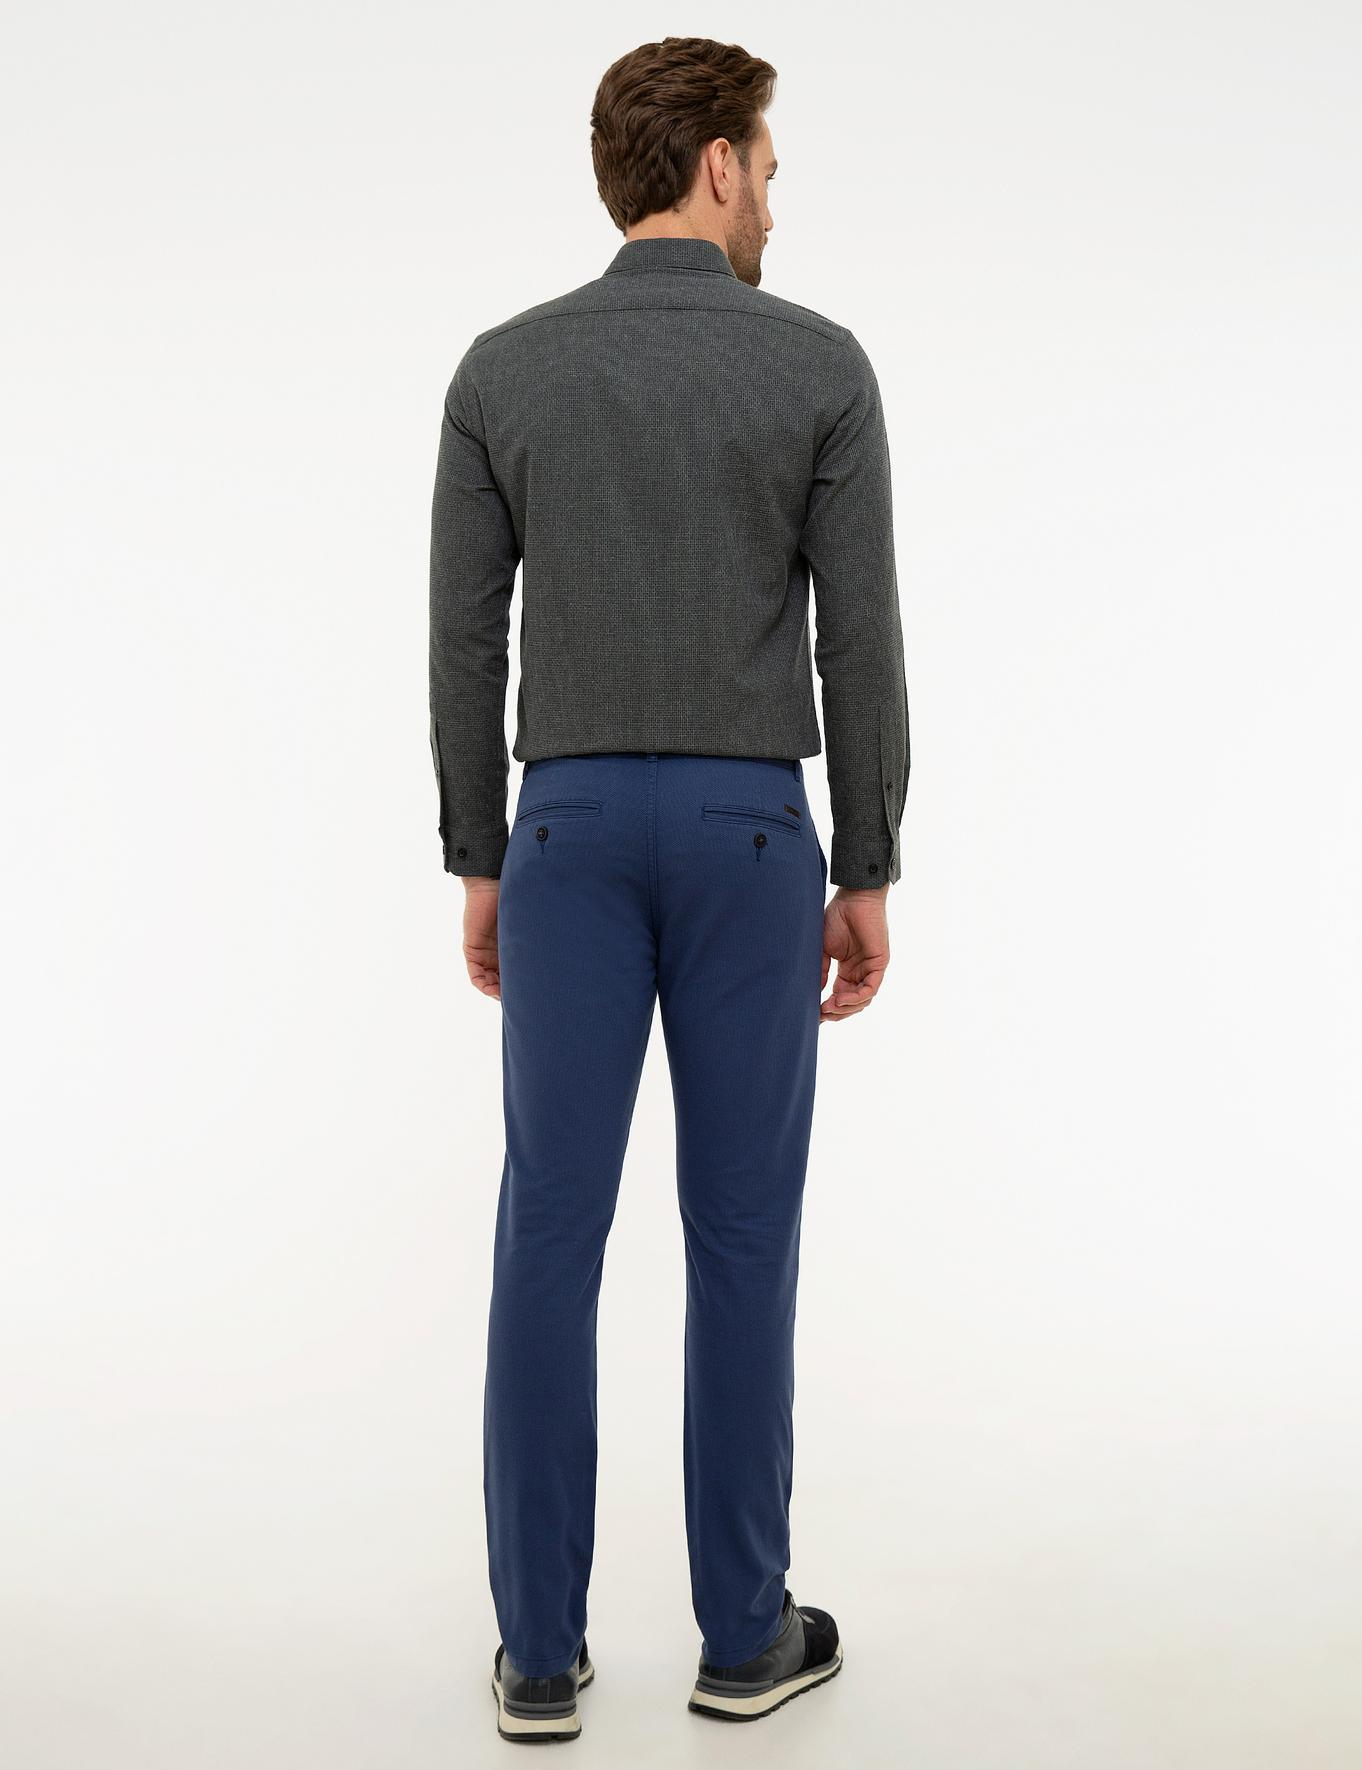 Mavi Slim Fit Chino Pantolon